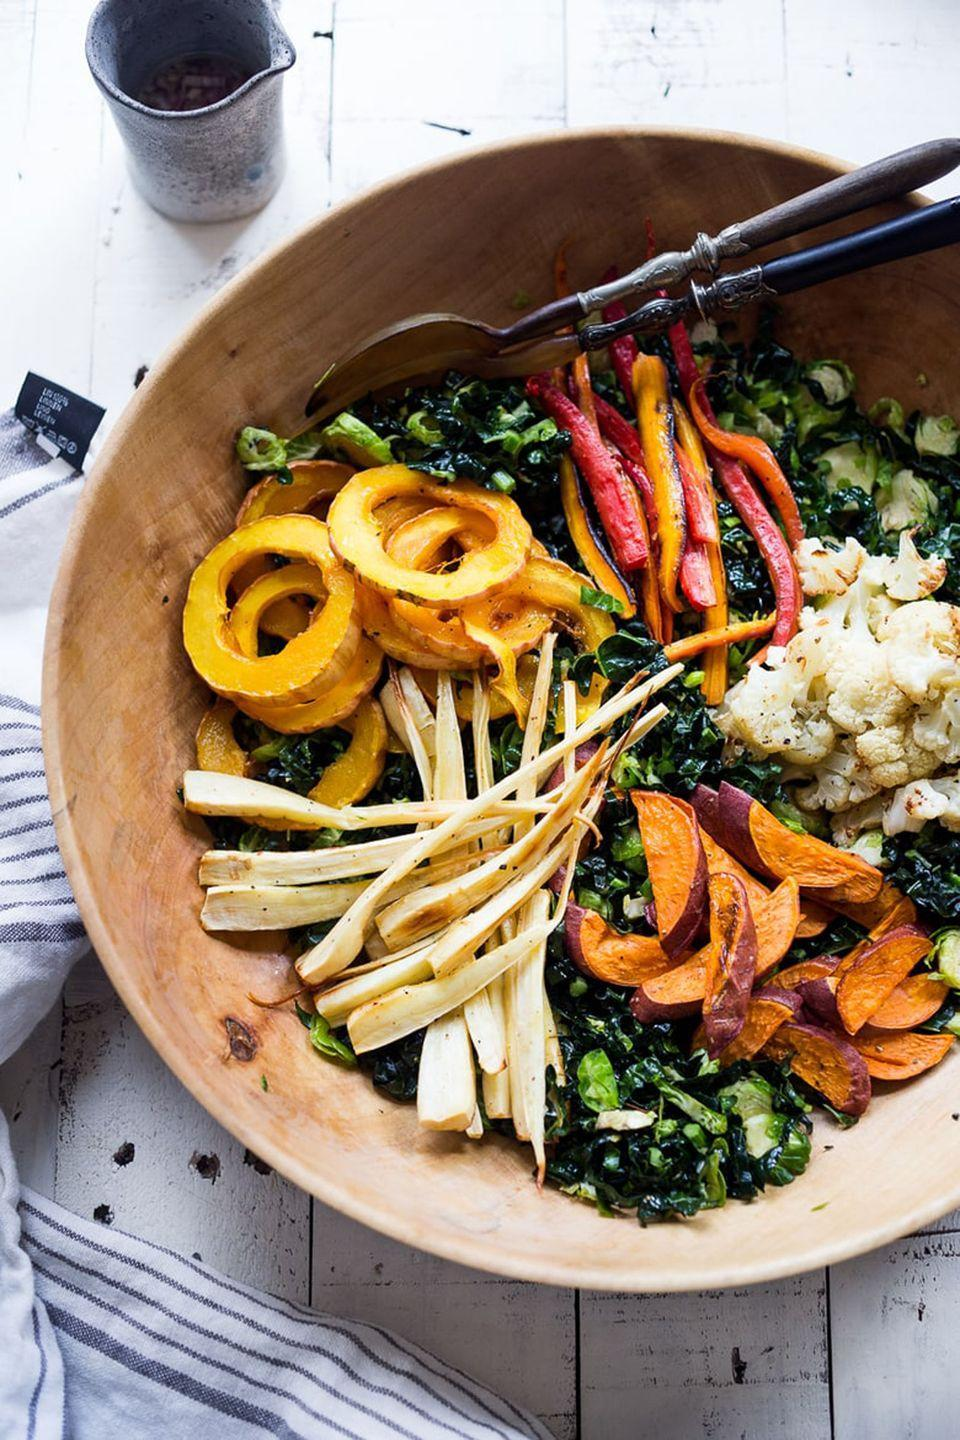 "<p>A hearty and <a href=""https://www.countryliving.com/food-drinks/g4710/thanksgiving-salad/"" rel=""nofollow noopener"" target=""_blank"" data-ylk=""slk:healthy salad"" class=""link rapid-noclick-resp"">healthy salad</a> will help you balance out a day of indulging.</p><p><strong>Get the recipe at <a href=""https://www.feastingathome.com/roasted-fall-vegetable-salad-maple-curry-dressing/"" rel=""nofollow noopener"" target=""_blank"" data-ylk=""slk:Feasting at Home"" class=""link rapid-noclick-resp"">Feasting at Home</a>.</strong> </p>"